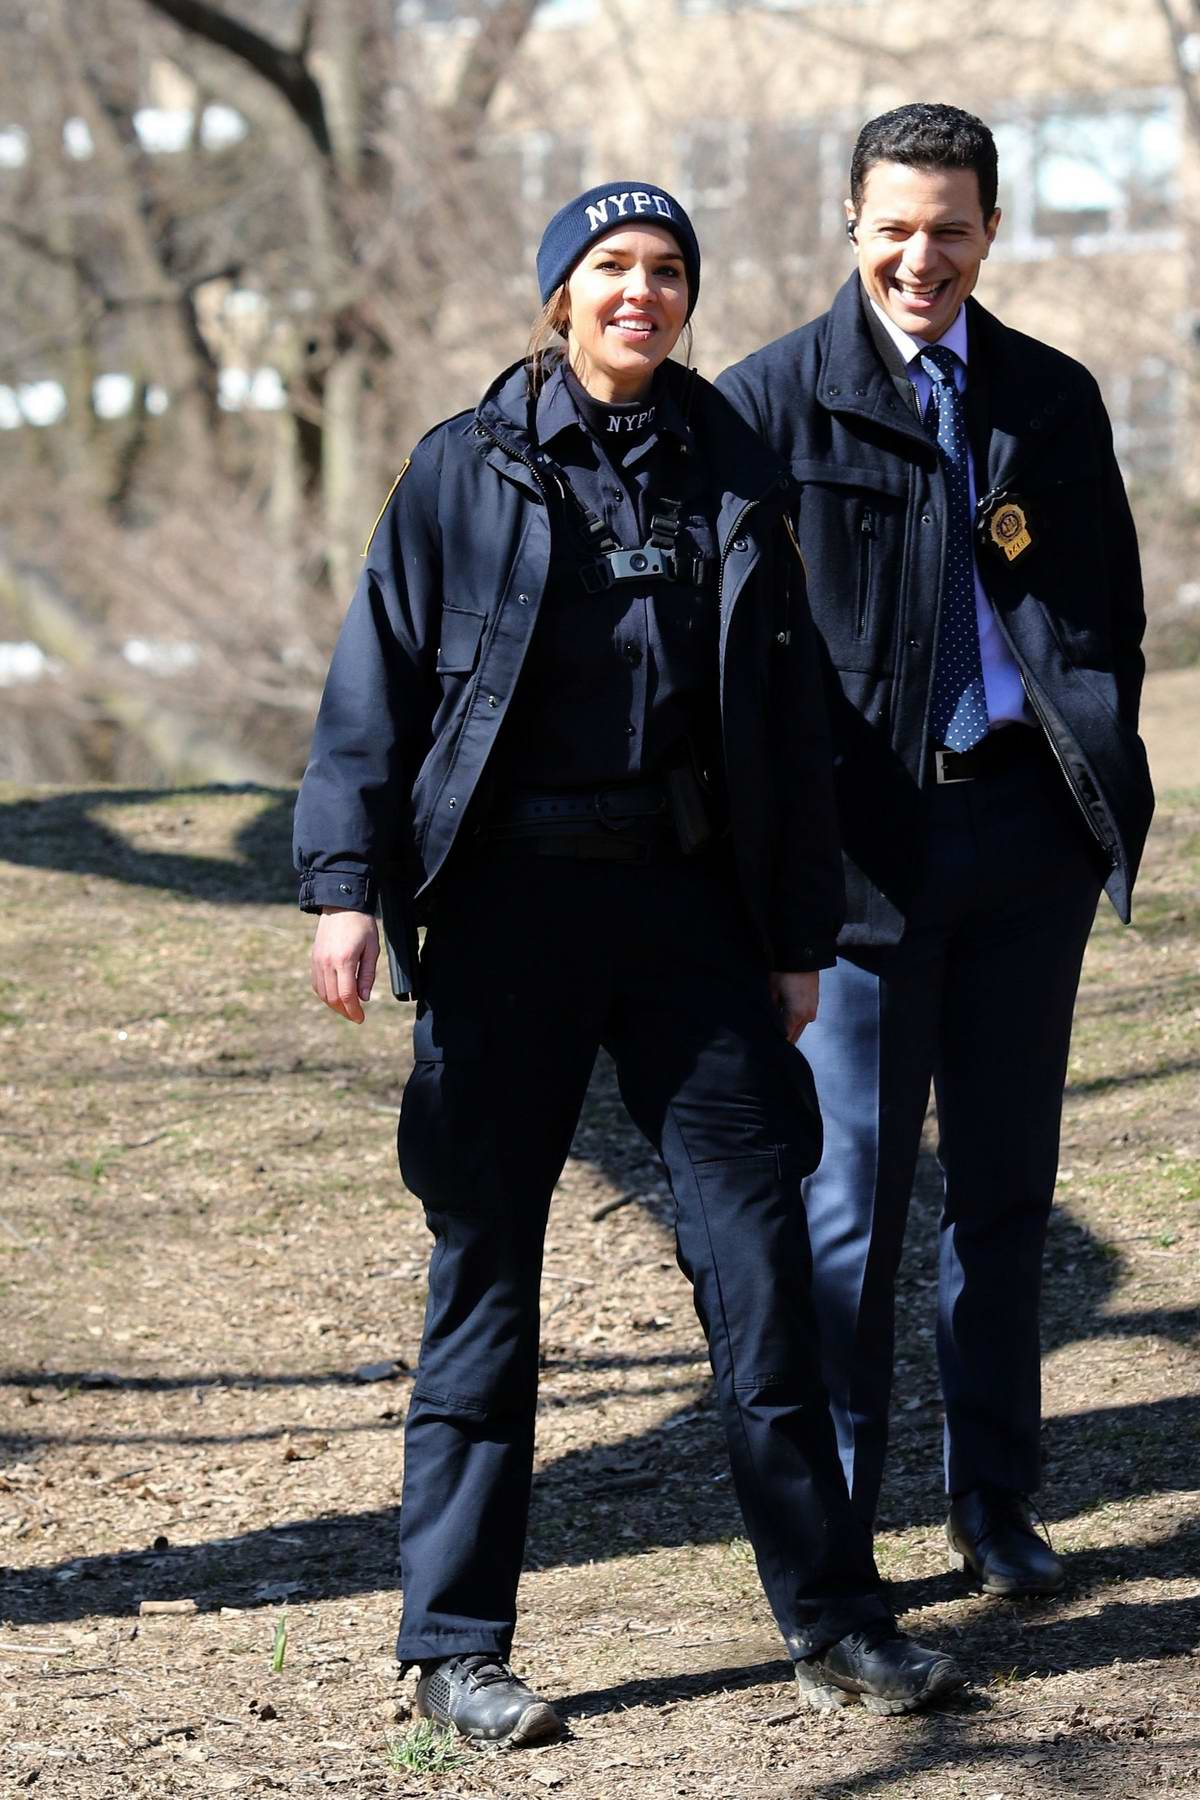 Arielle Kebbel spotted in NYPD uniform while filming 'The Bone Collector' spinoff pilot 'Lincoln' in New York City